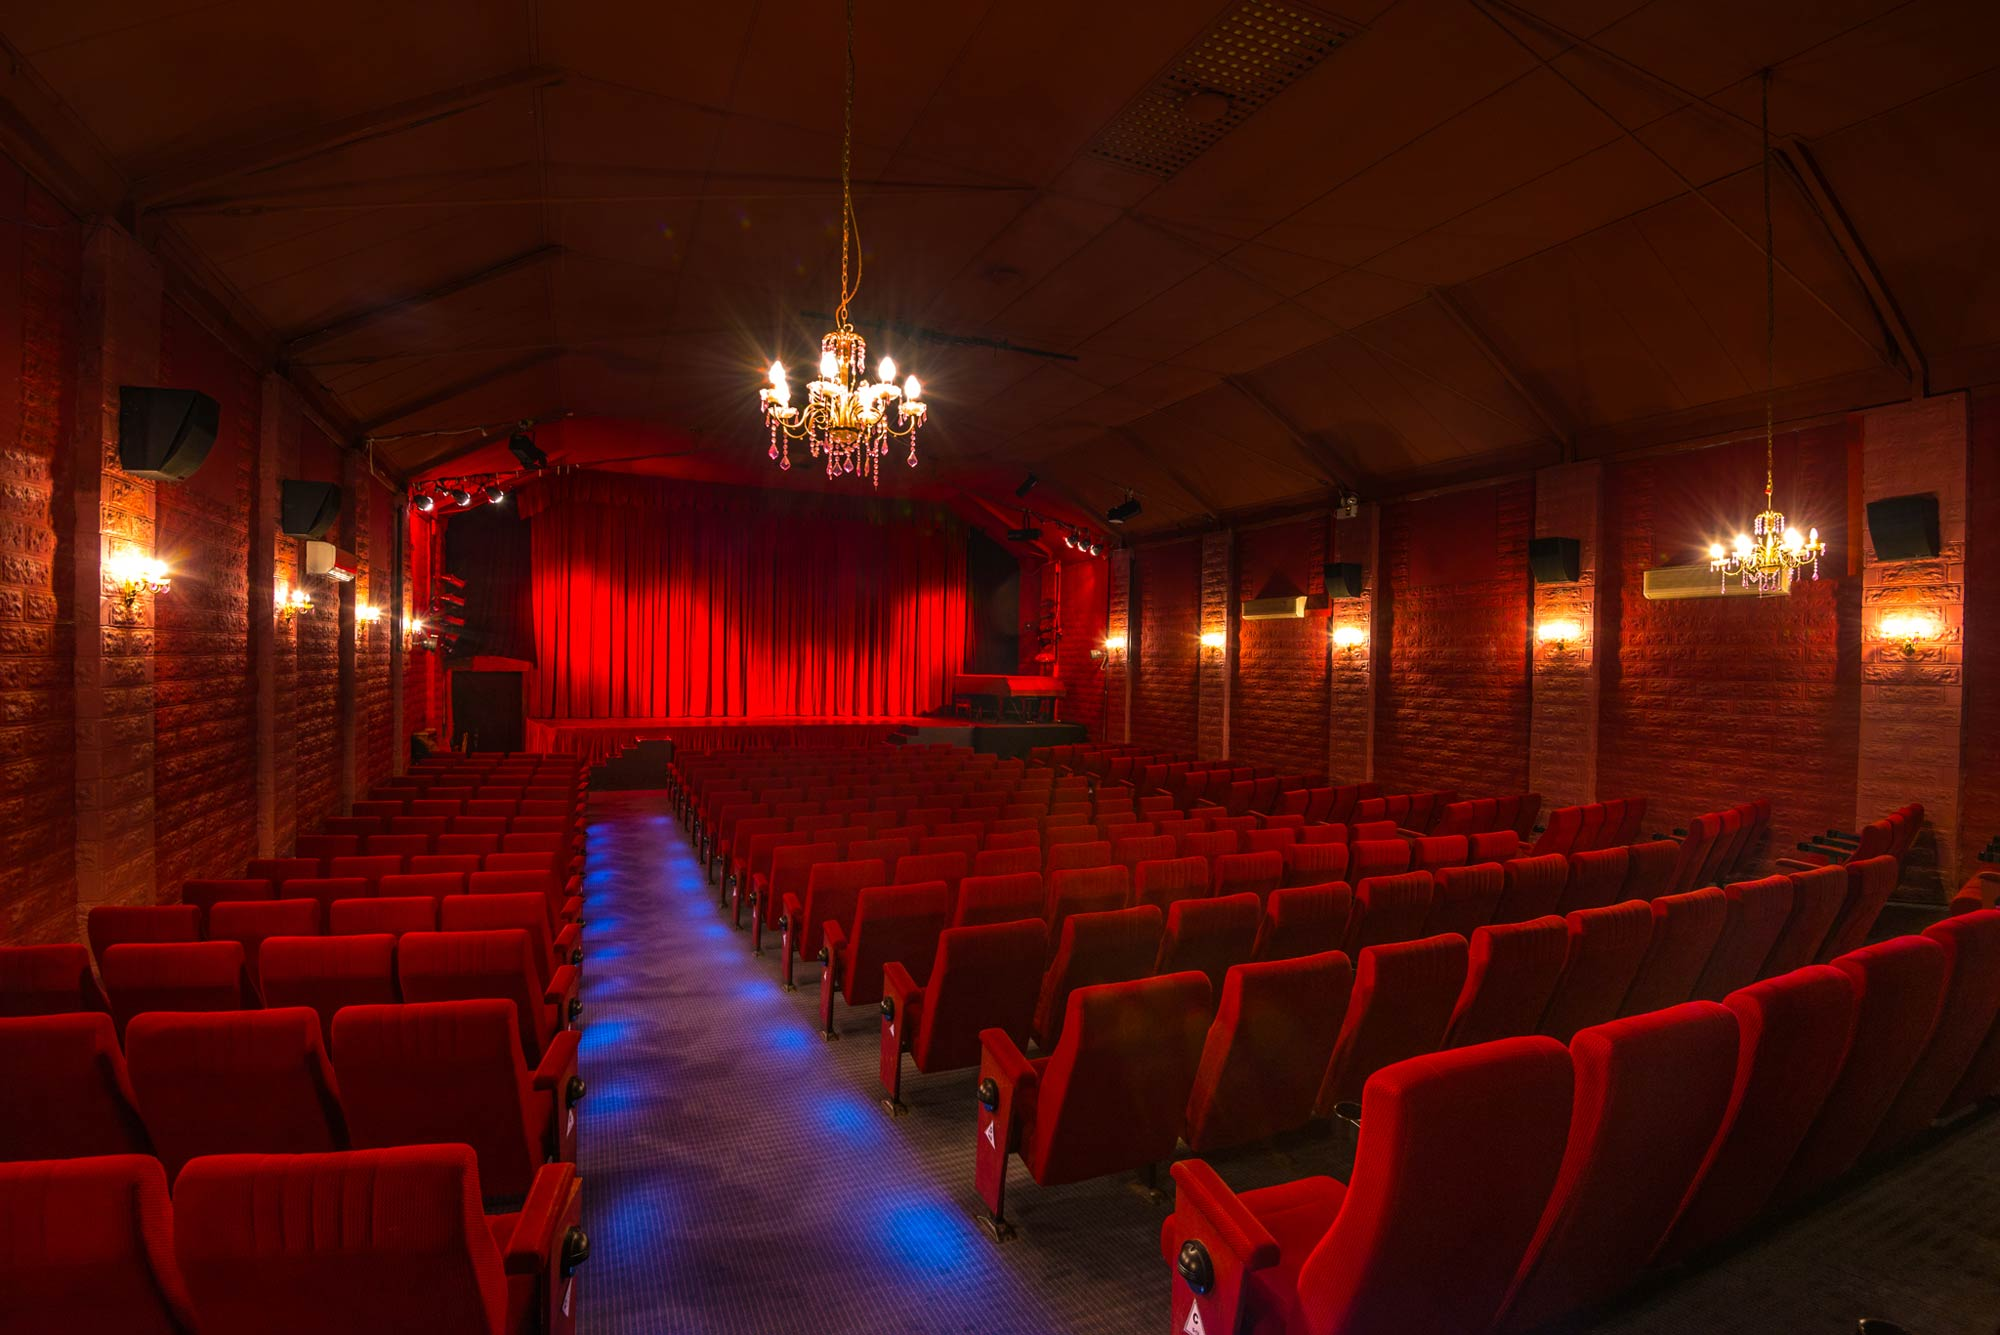 Inside Theatre Image updated